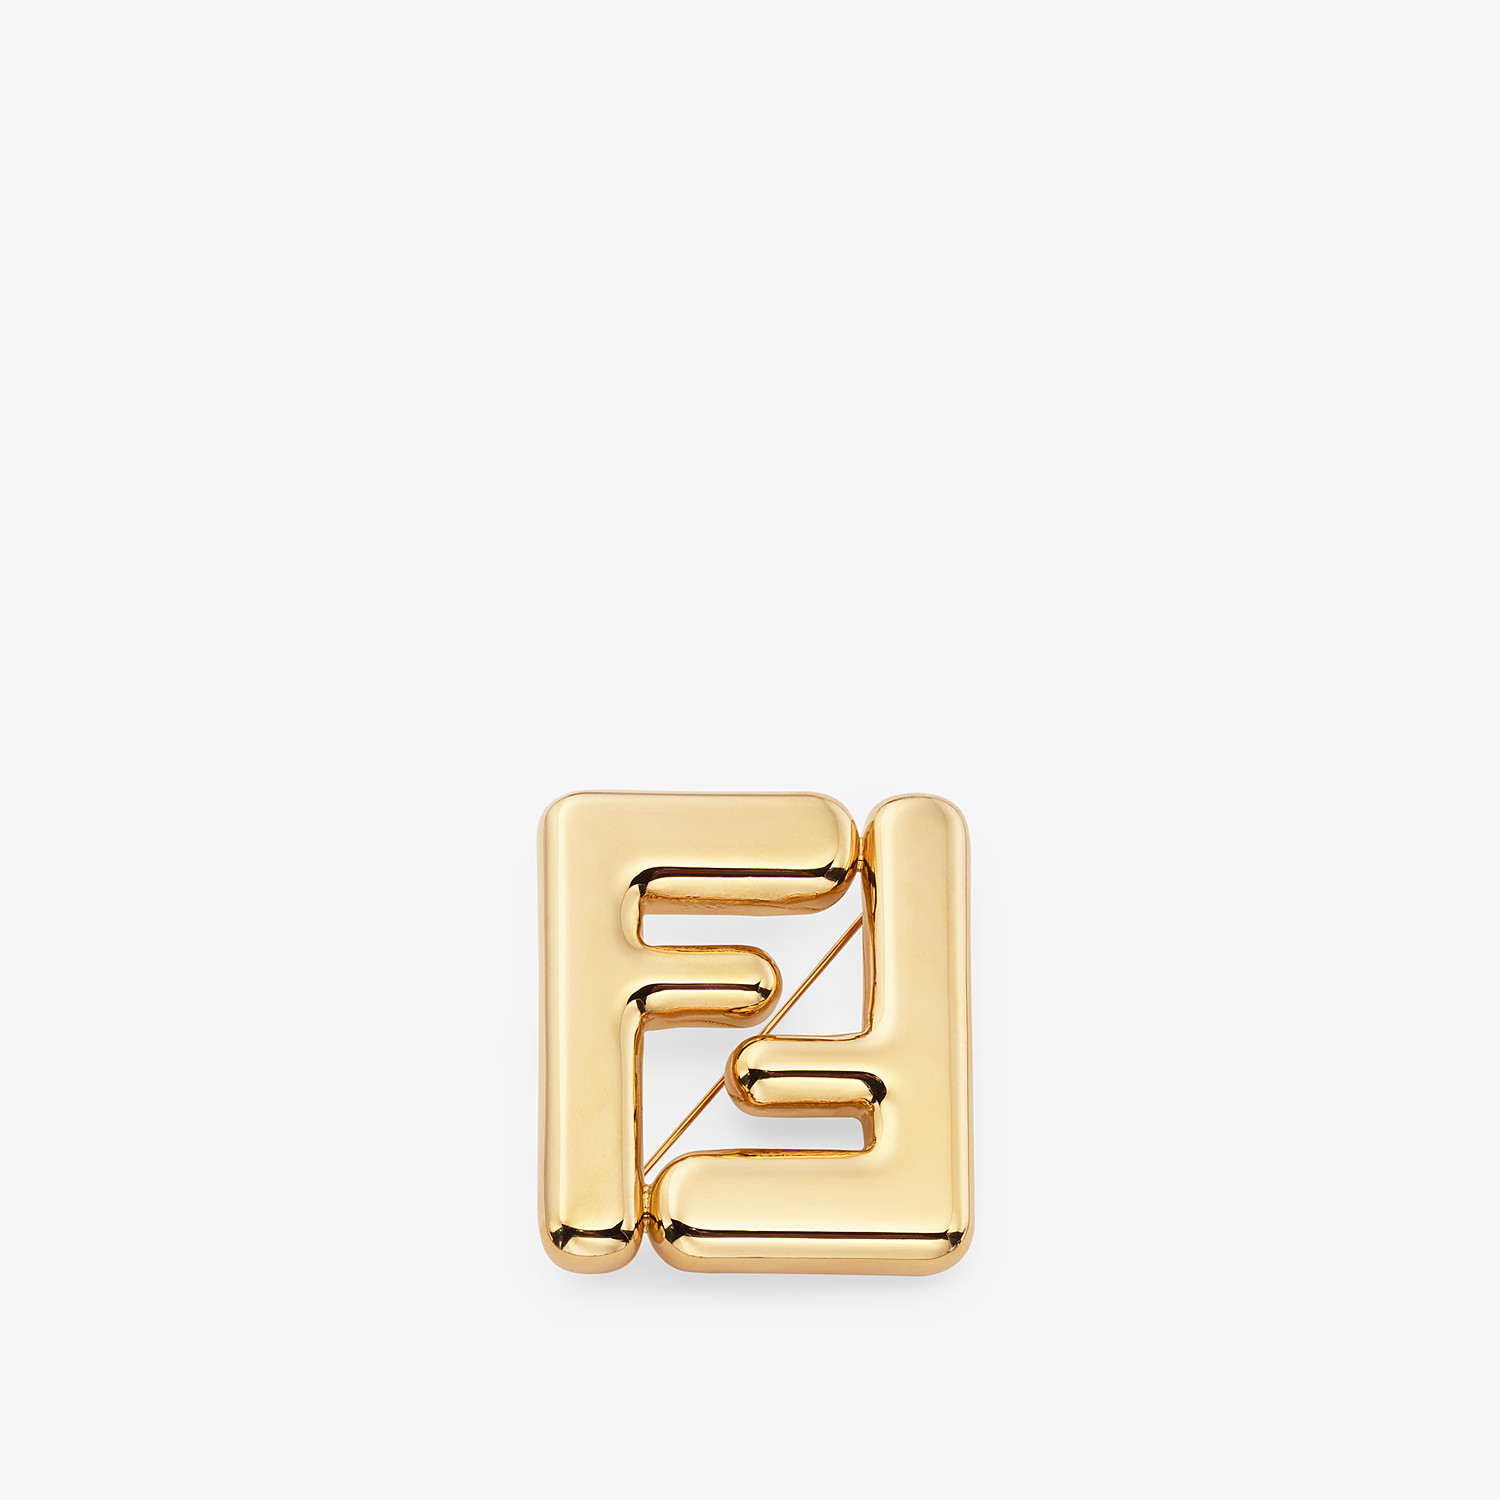 FENDI MAXI LOGO BROOCH - Gold-colored brooch - view 1 detail